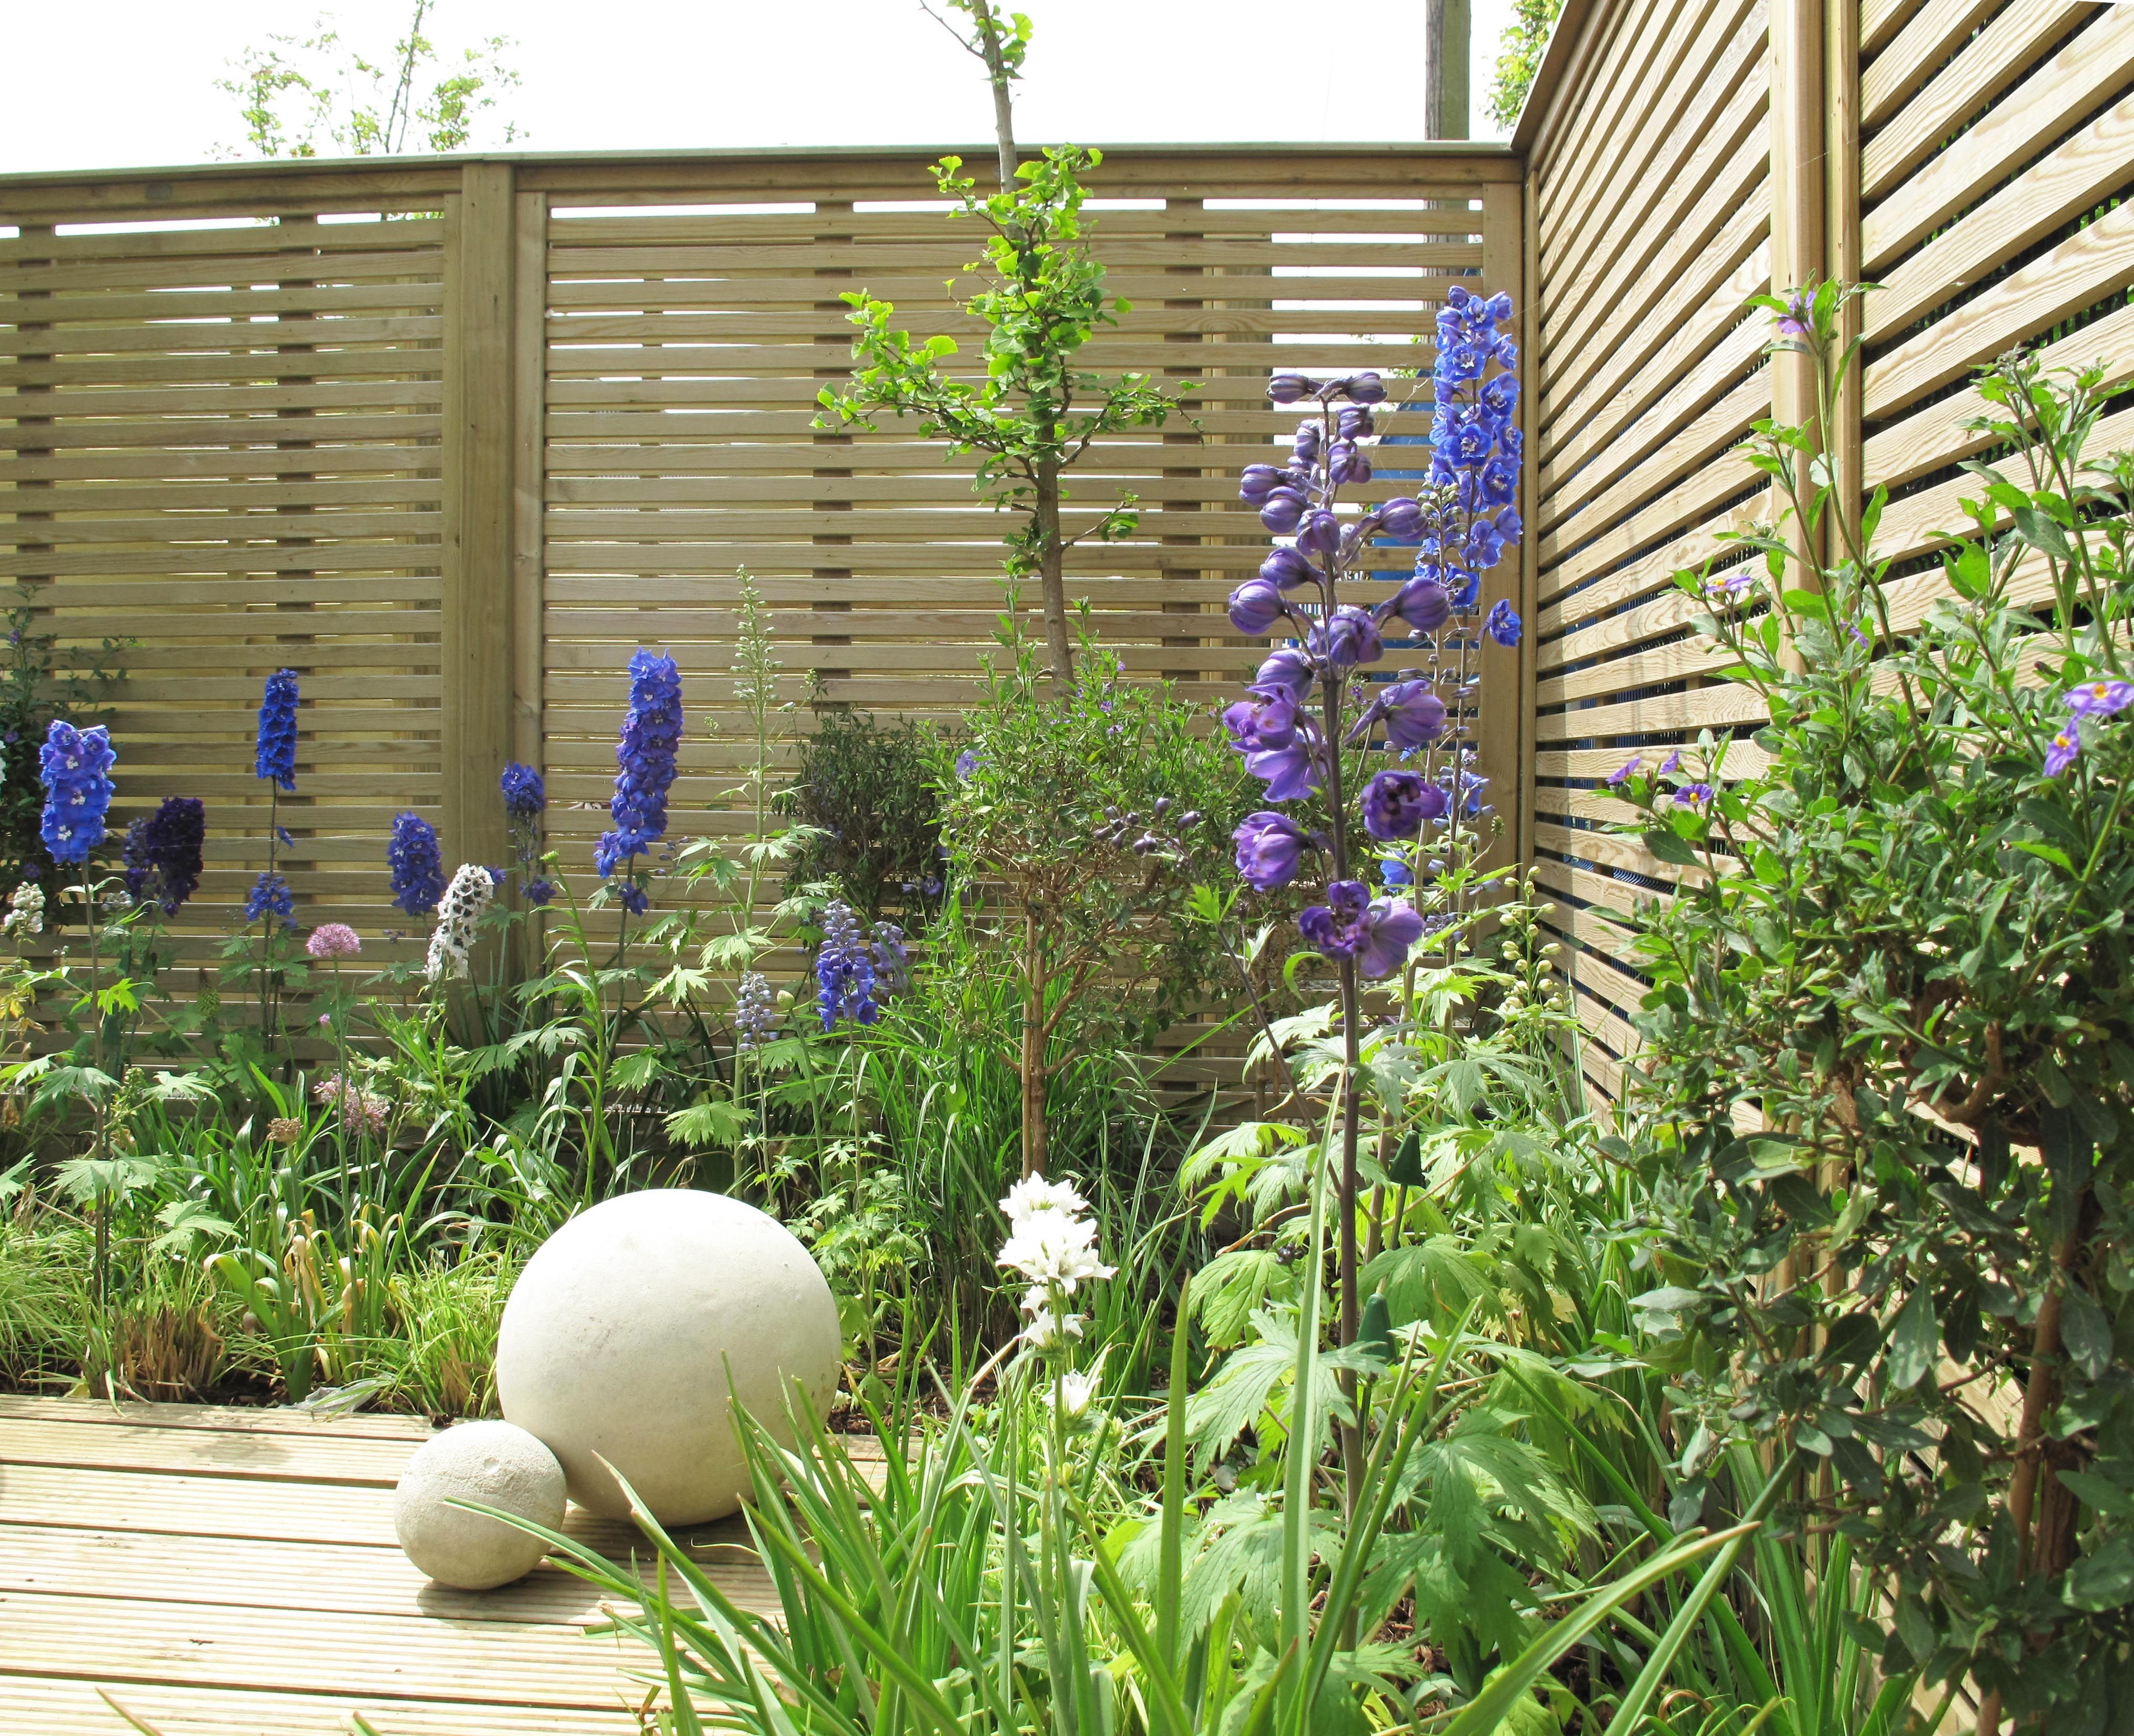 Jacksons venetian fence panels allows light in through the jacksons venetian fence panels allows light in through the horizontal slates perfect for small or baanklon Gallery